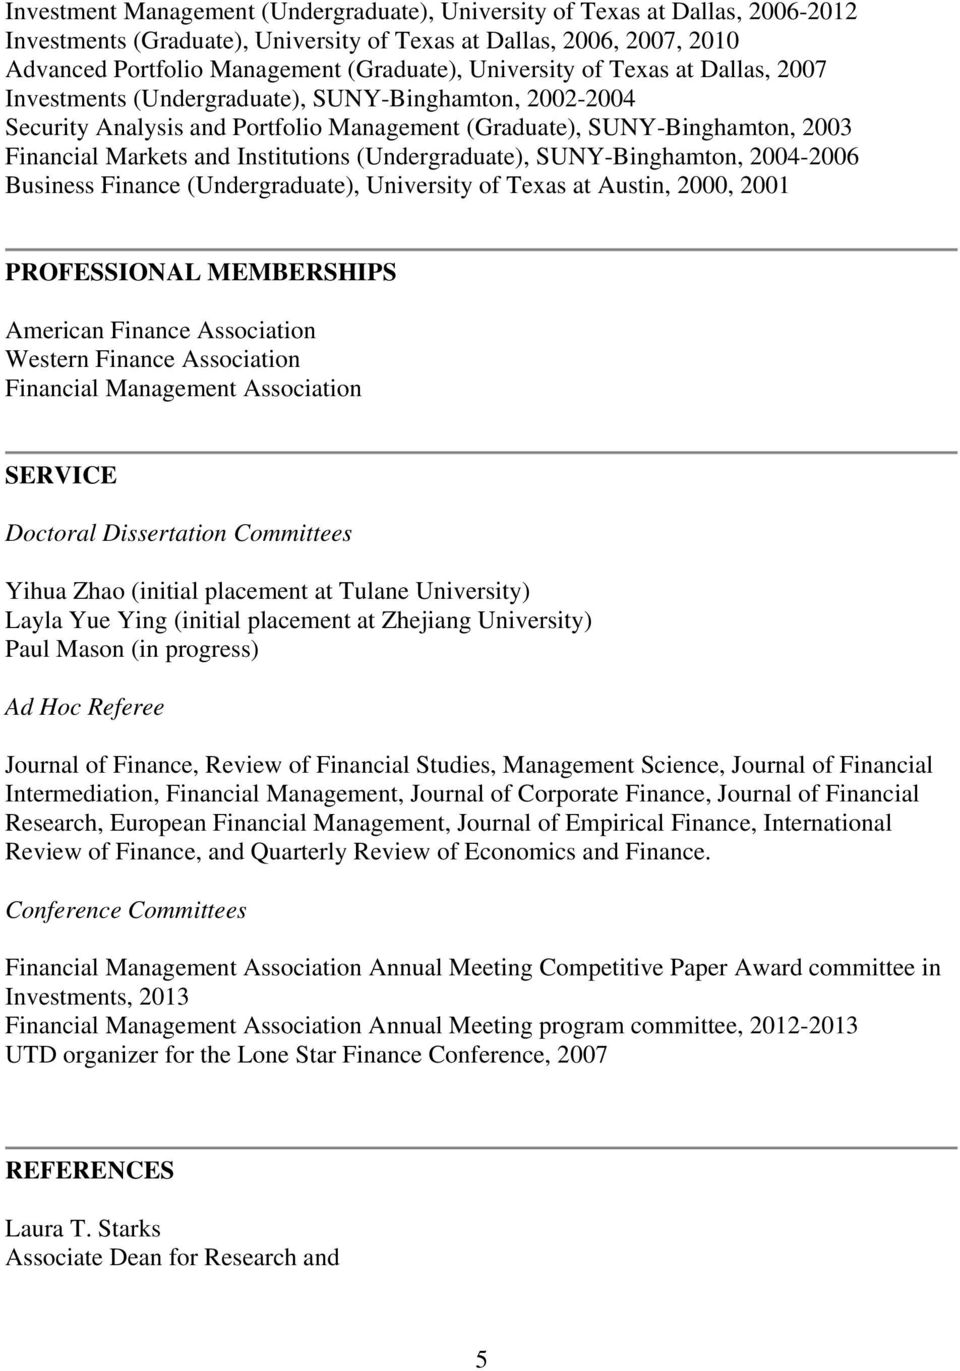 Institutions (Undergraduate), SUNY-Binghamton, 2004-2006 Business Finance (Undergraduate), University of Texas at Austin, 2000, 2001 PROFESSIONAL MEMBERSHIPS American Finance Association Western